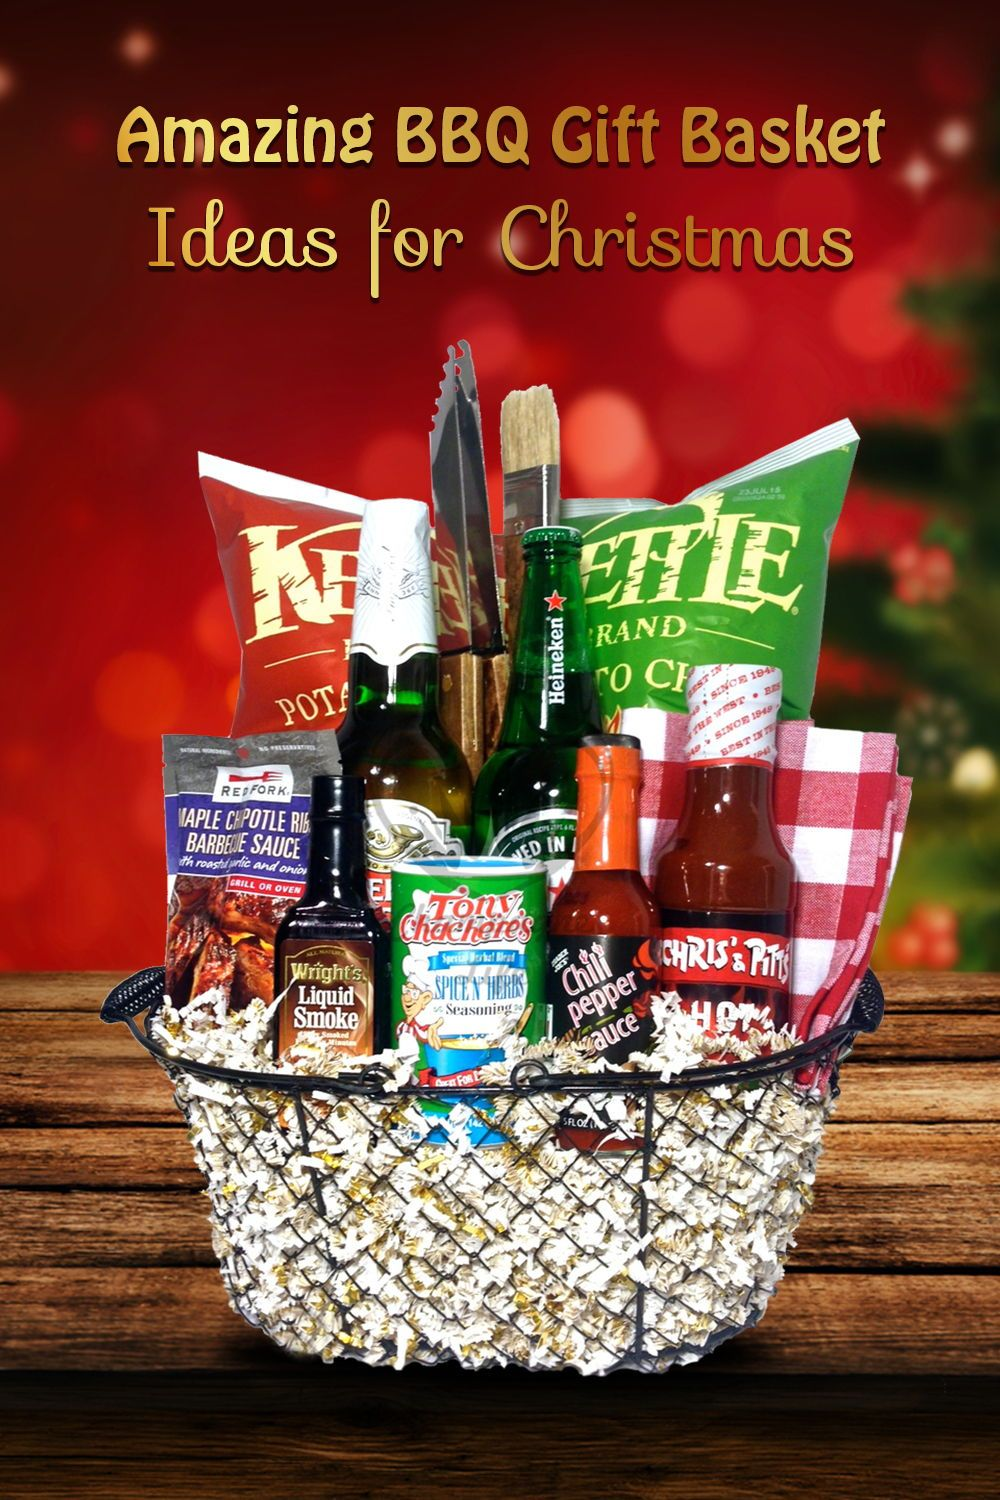 Bbq Gift Baskets Bbq Sauce Gift Set Meat Smoker Gift Basket Bbq Gift Set Bbq Sauce And Rub Gift Baskets Grilli Bbq Gift Basket Grilling Gifts Bbq Gift Set